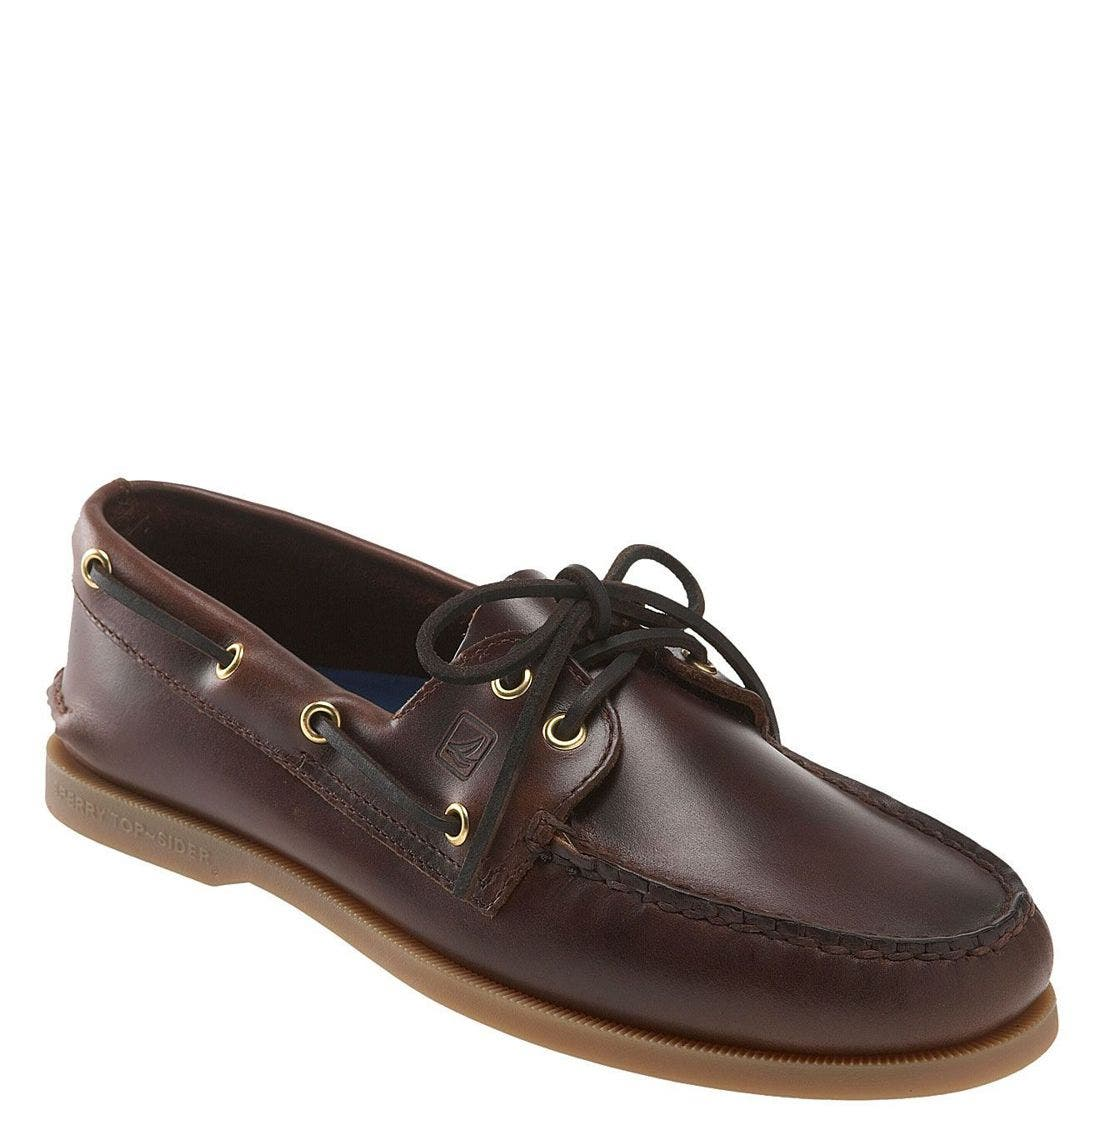 Alternate Image 1 Selected - Sperry 'Authentic Original' Boat Shoe (Men)